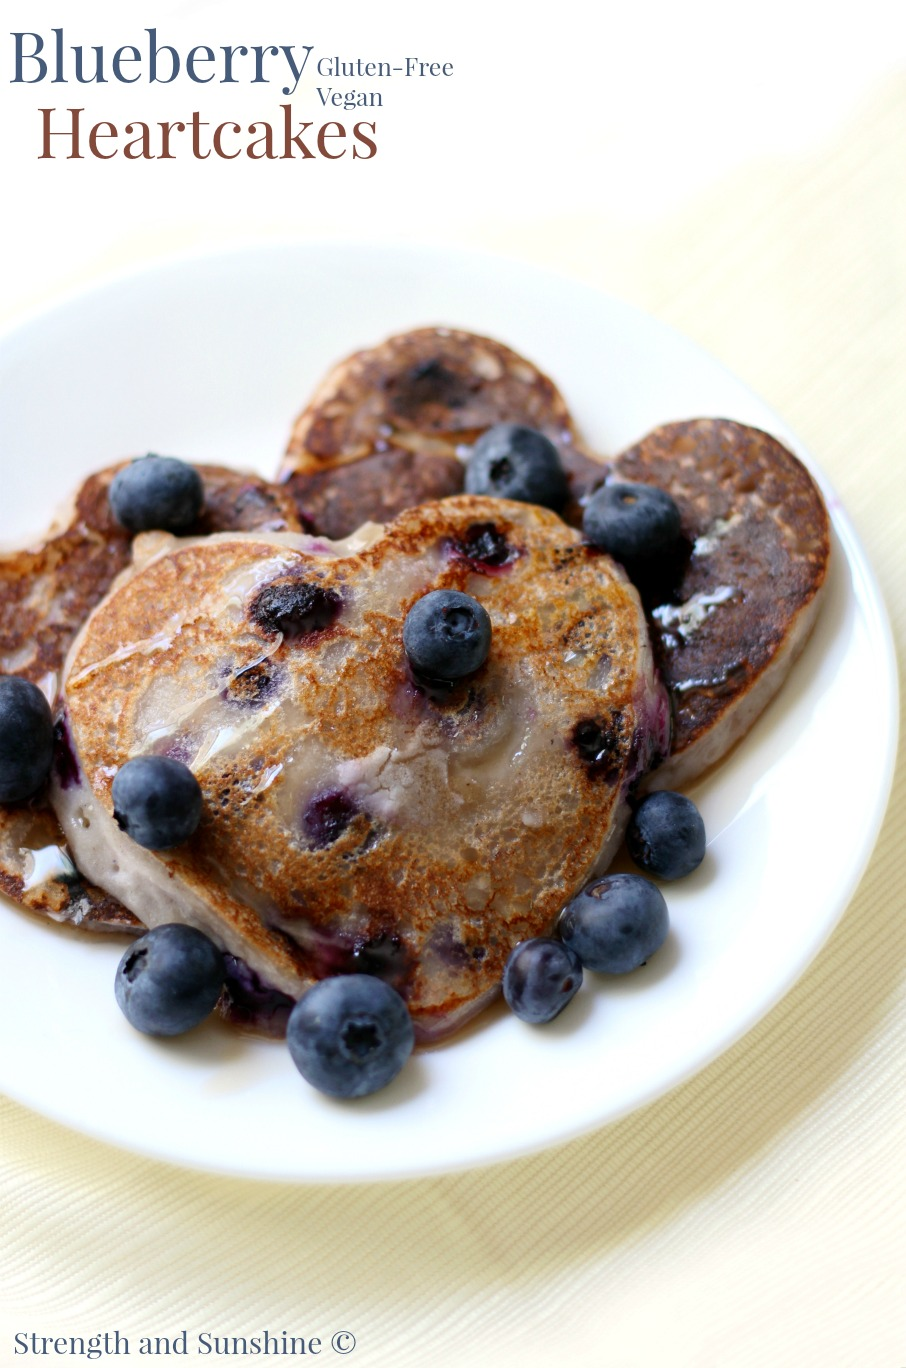 Blueberry heartcakes pm1g blueberry heartcakes strength and sunshine rebeccagf666 turn your pancakes into an even more loving ccuart Gallery